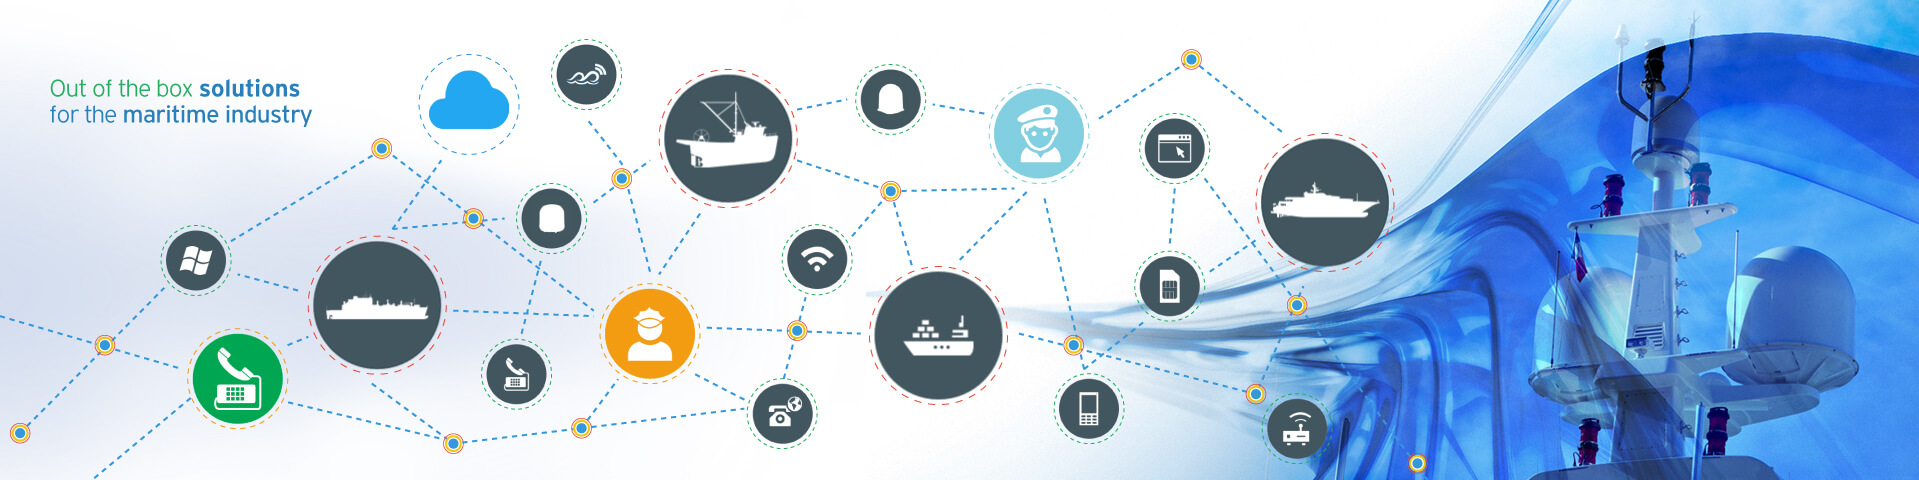 Marpoint - Out of the box solution for maritime industry